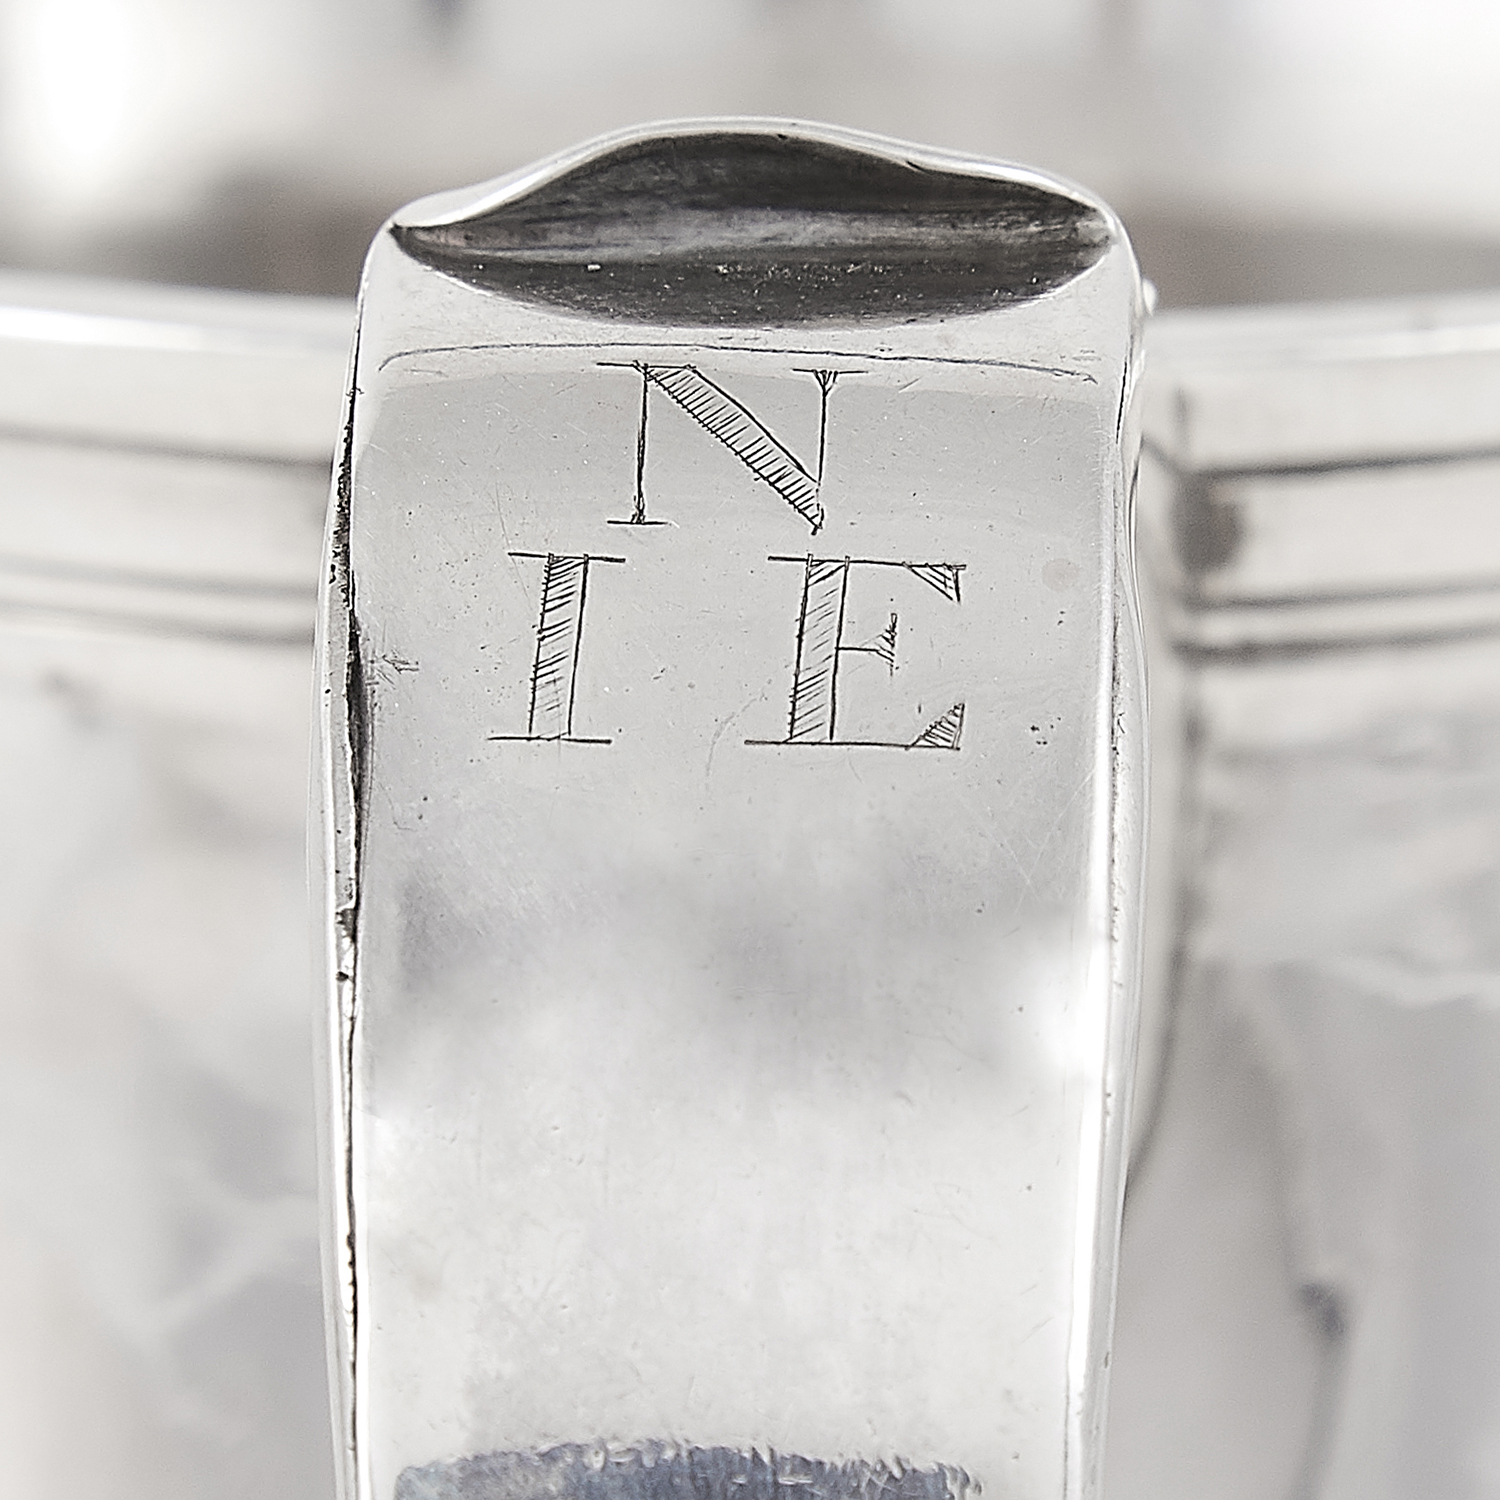 ANTIQUE GEORGE III STERLING SILVER PINT MUG, JOHN LANGLANDS, NEWCASTLE 1769 the tapering body on a - Image 3 of 3